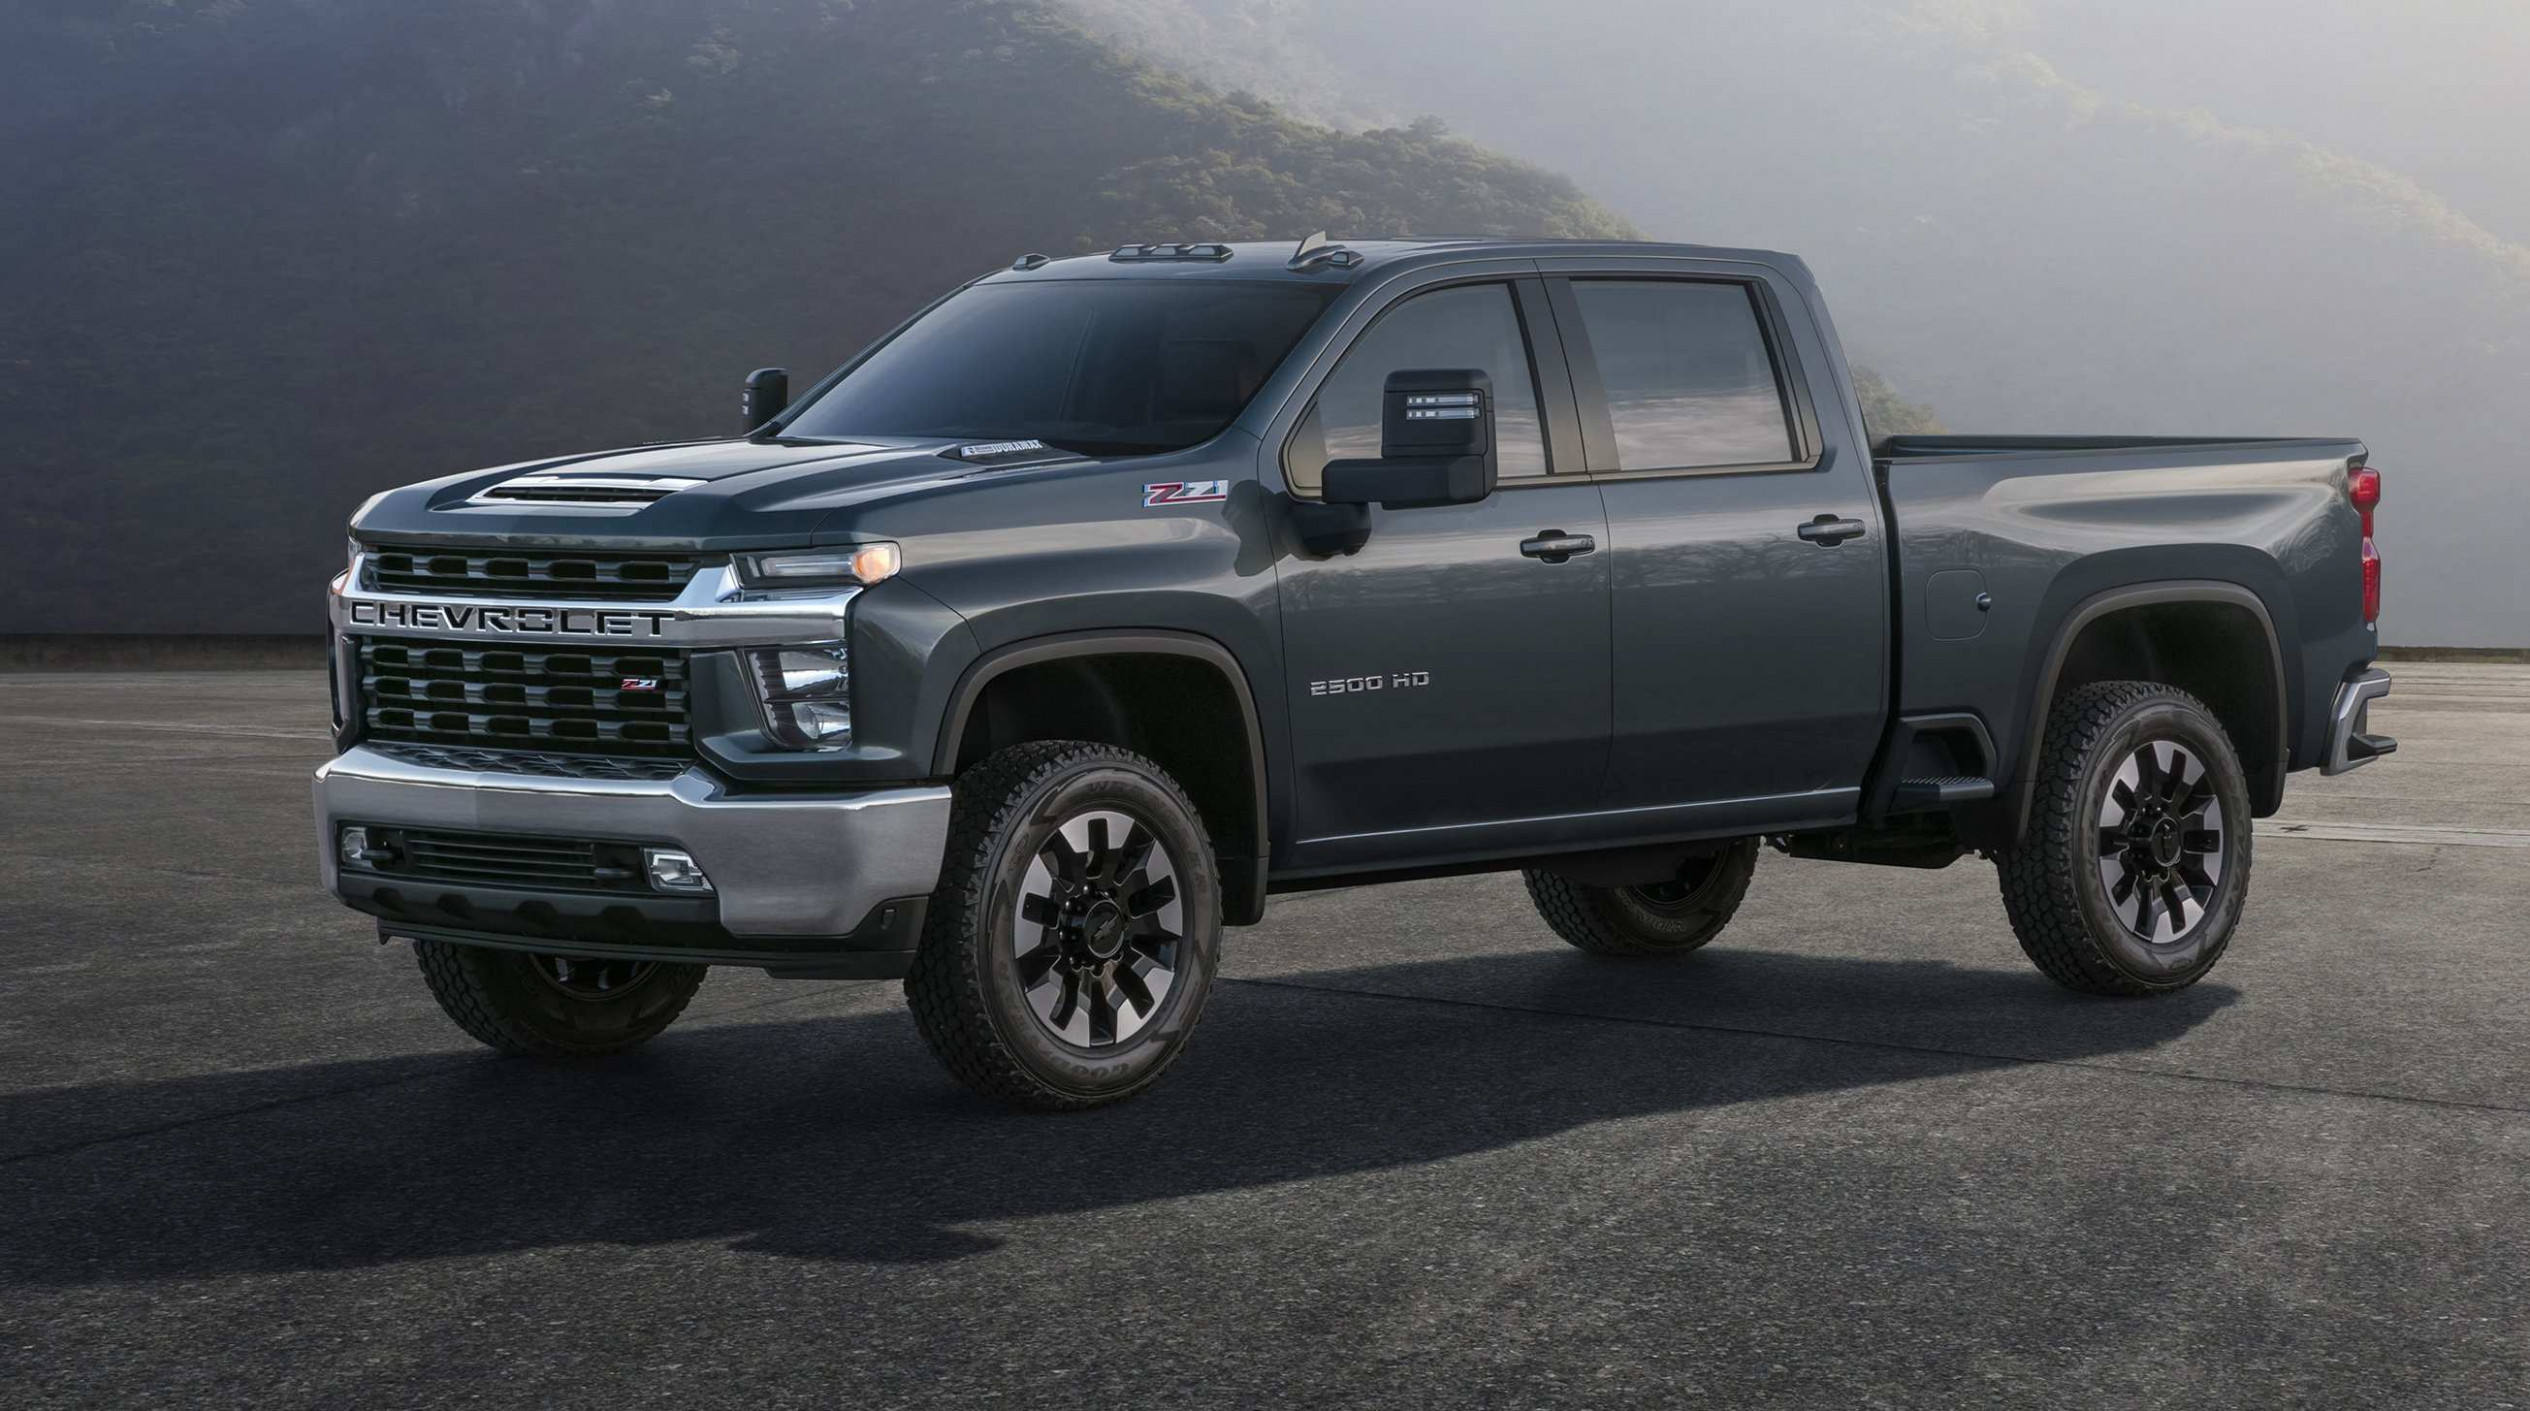 12 New 12 Chevrolet Silverado 12 Ld New Concept with 12 ...